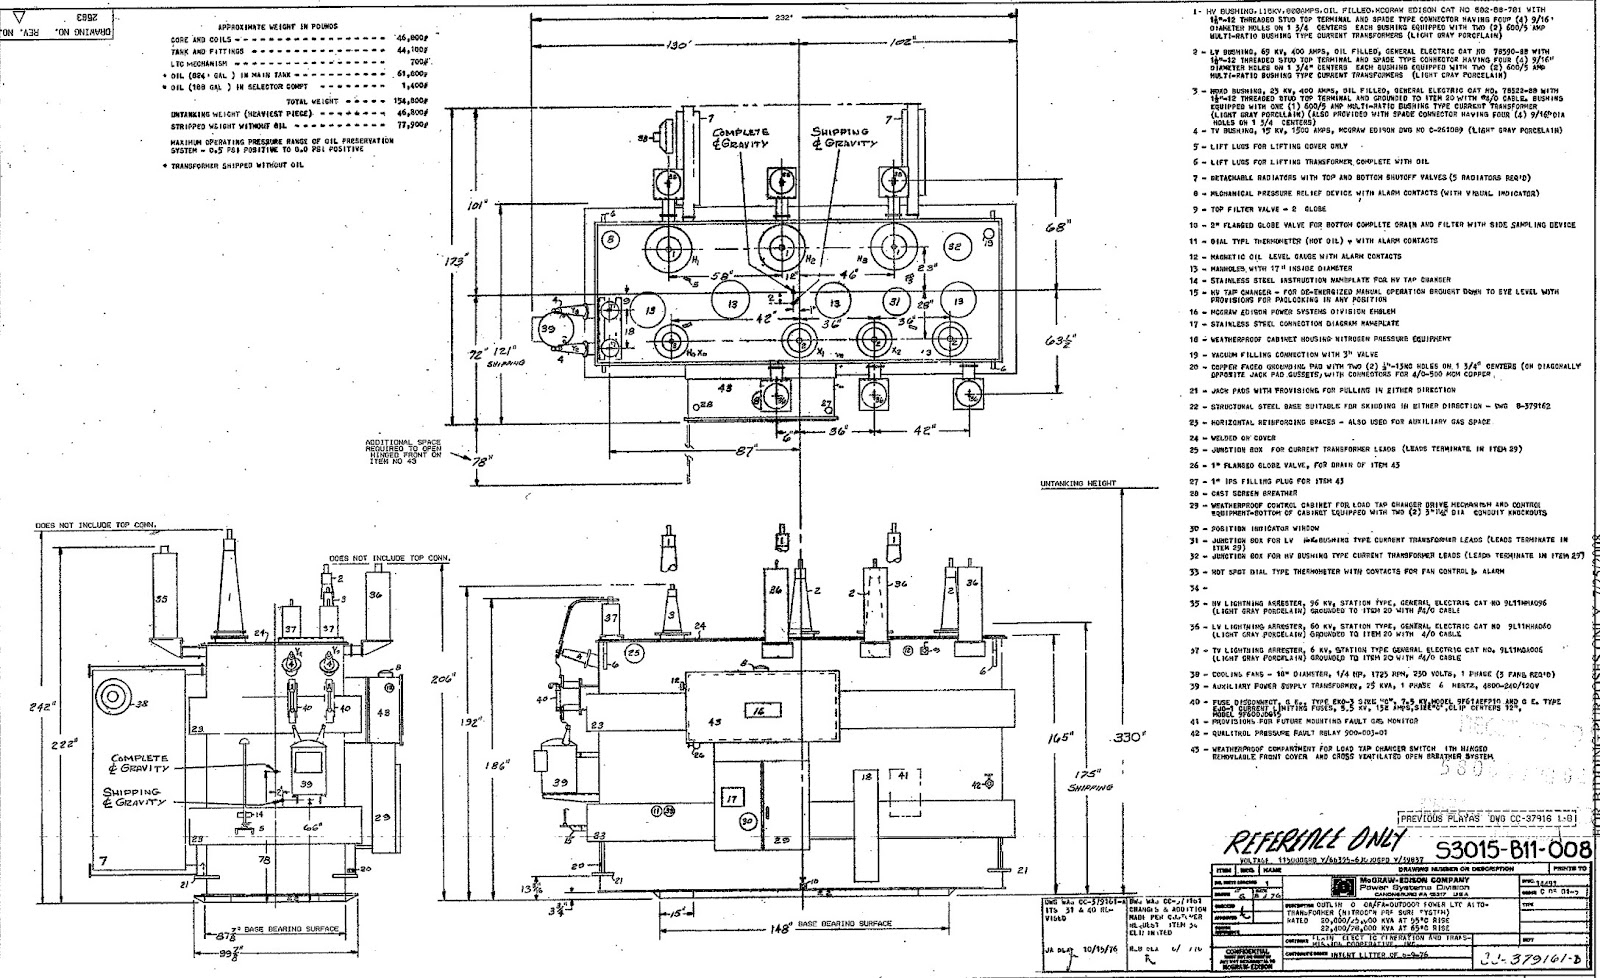 acme transformer t 1 81051 wiring diagram Collection-in acme buck boost transformer wiring diagram within wiring diagram rh magnusrosen net acme transformer wiring diagrams single phase acme transformer wiring 8-h